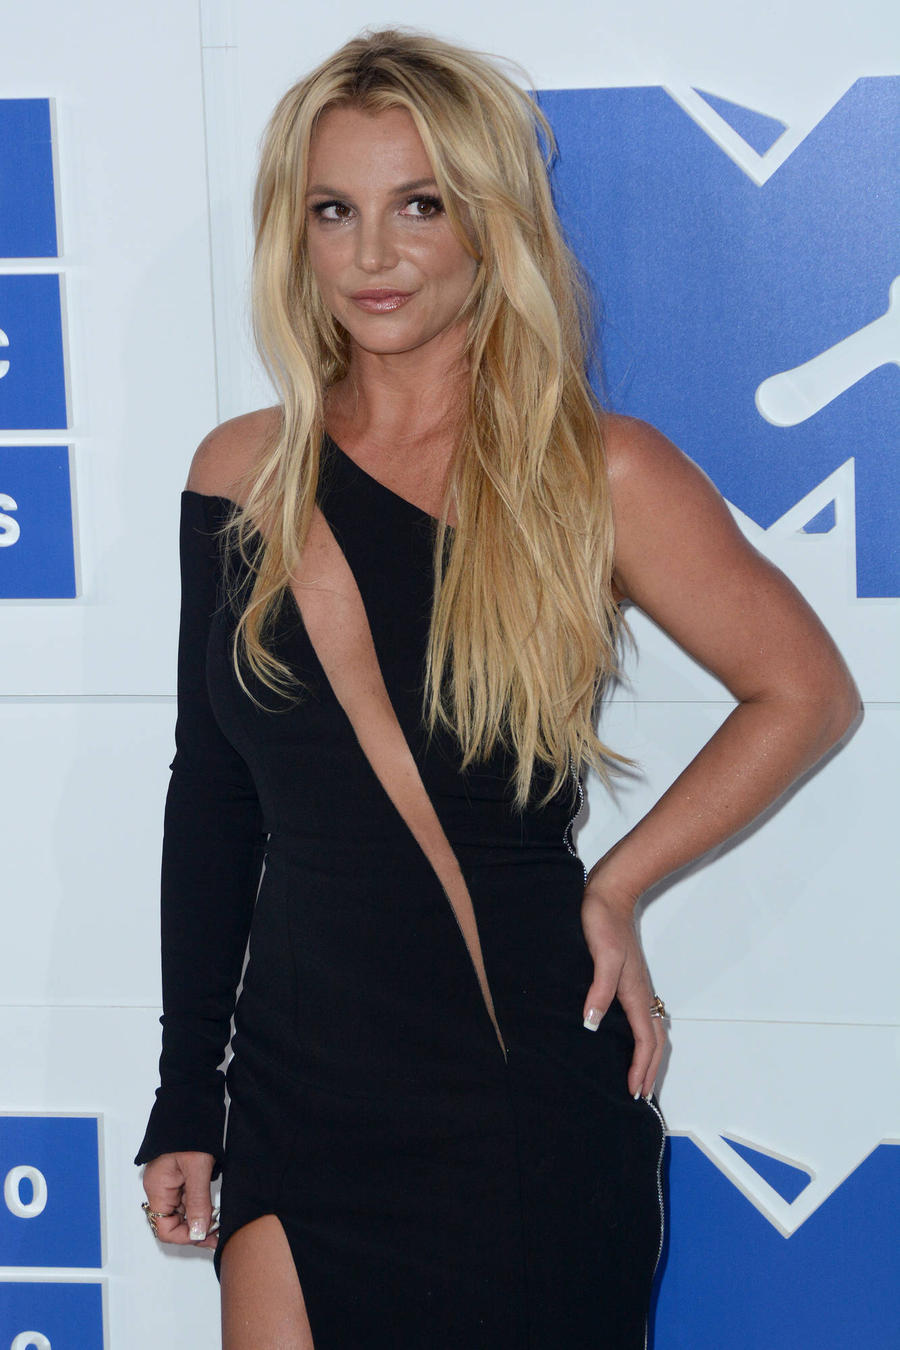 Britney Spears' Kids Think Mum Is Cool After Vmas Return